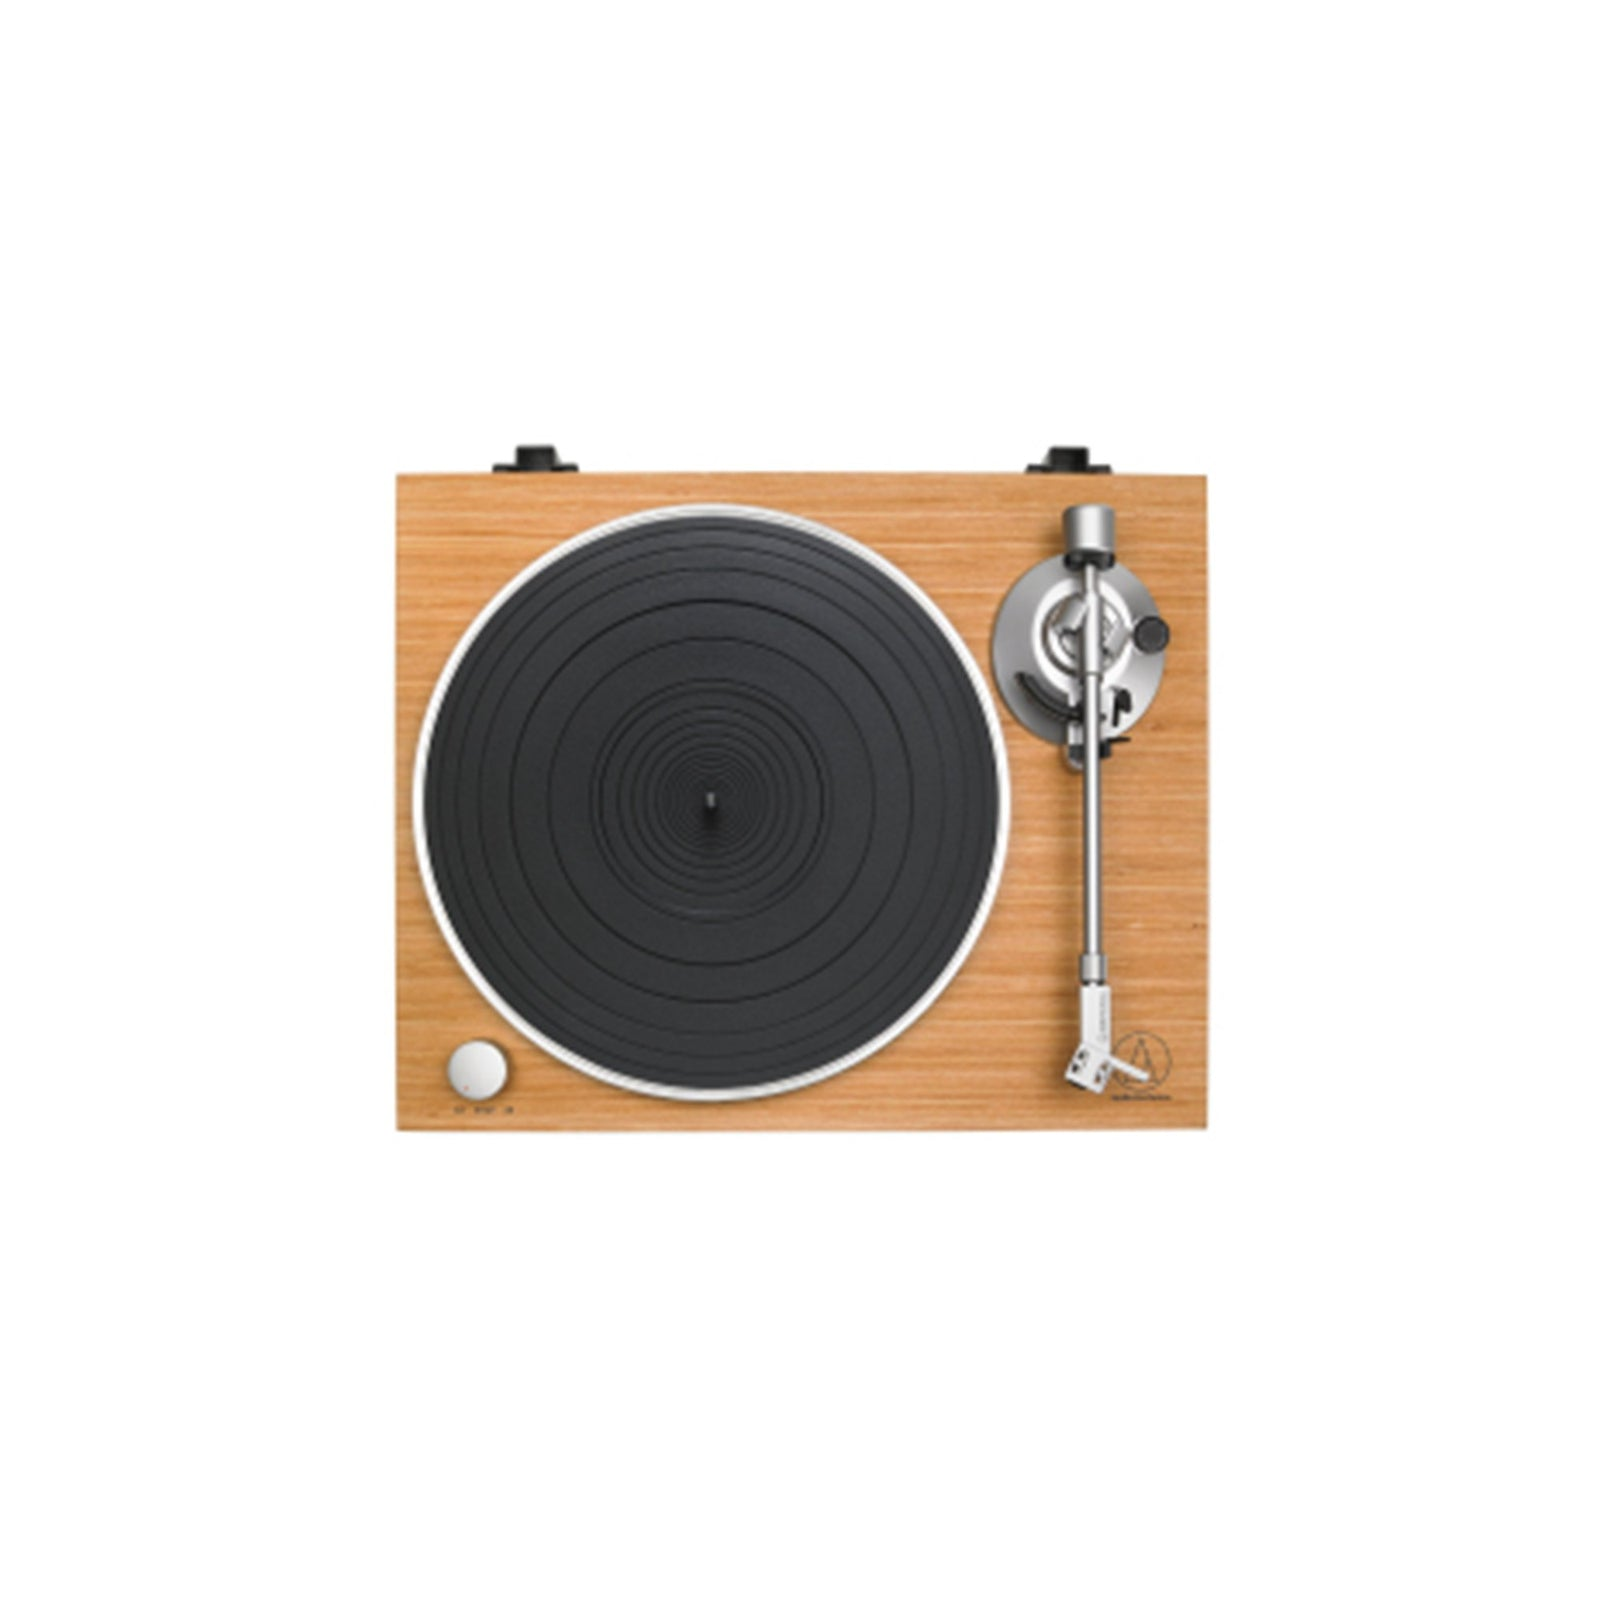 Audio-Technica AT-LPW30TK Fully Manual Belt-Drive Turntable top